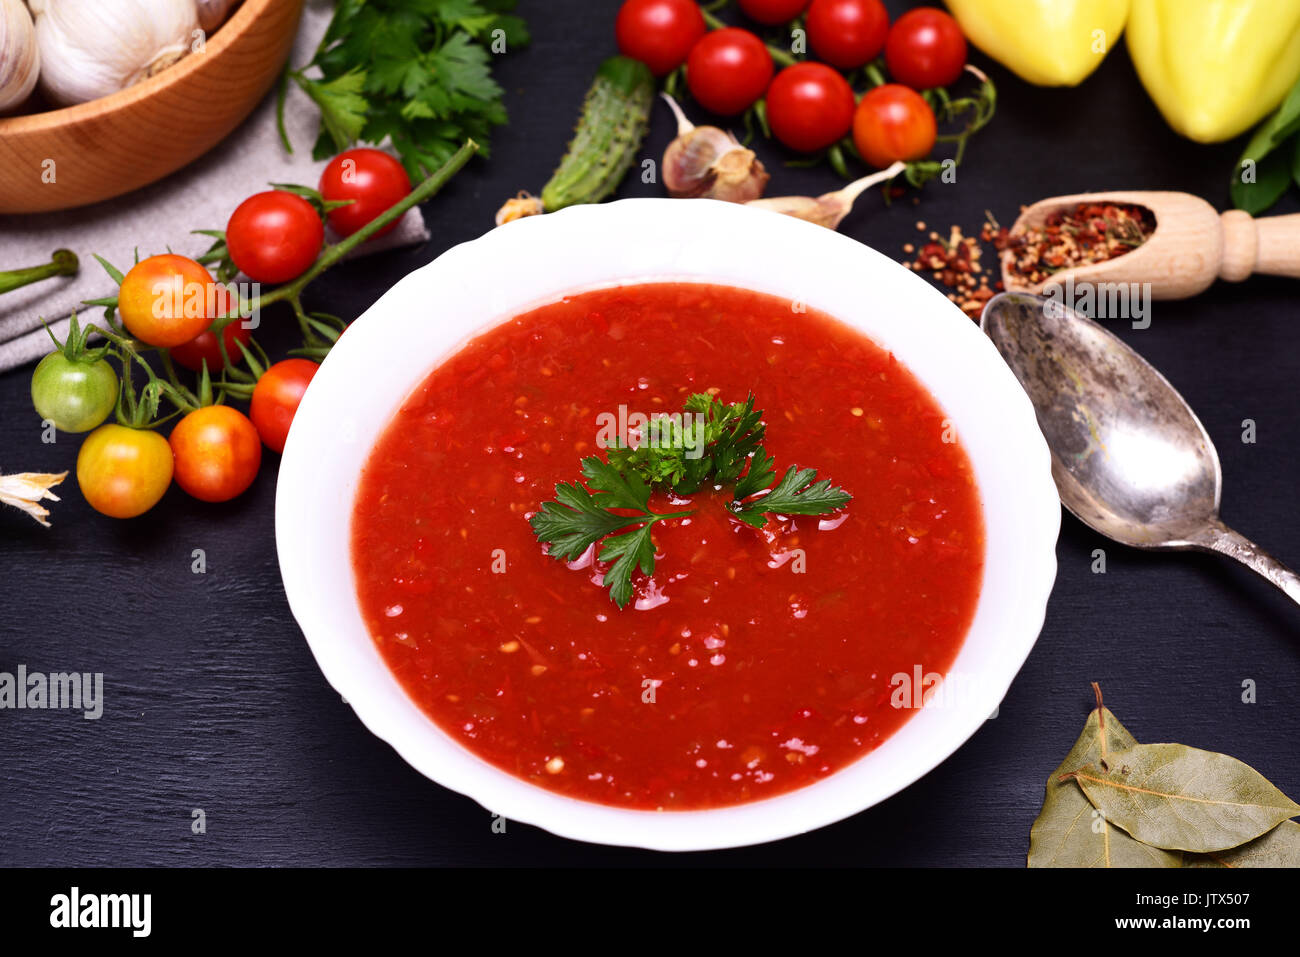 Gazpacho Spanish cold soup in a white round ceramic plate in the midst of fresh vegetables ingredients, top view - Stock Image